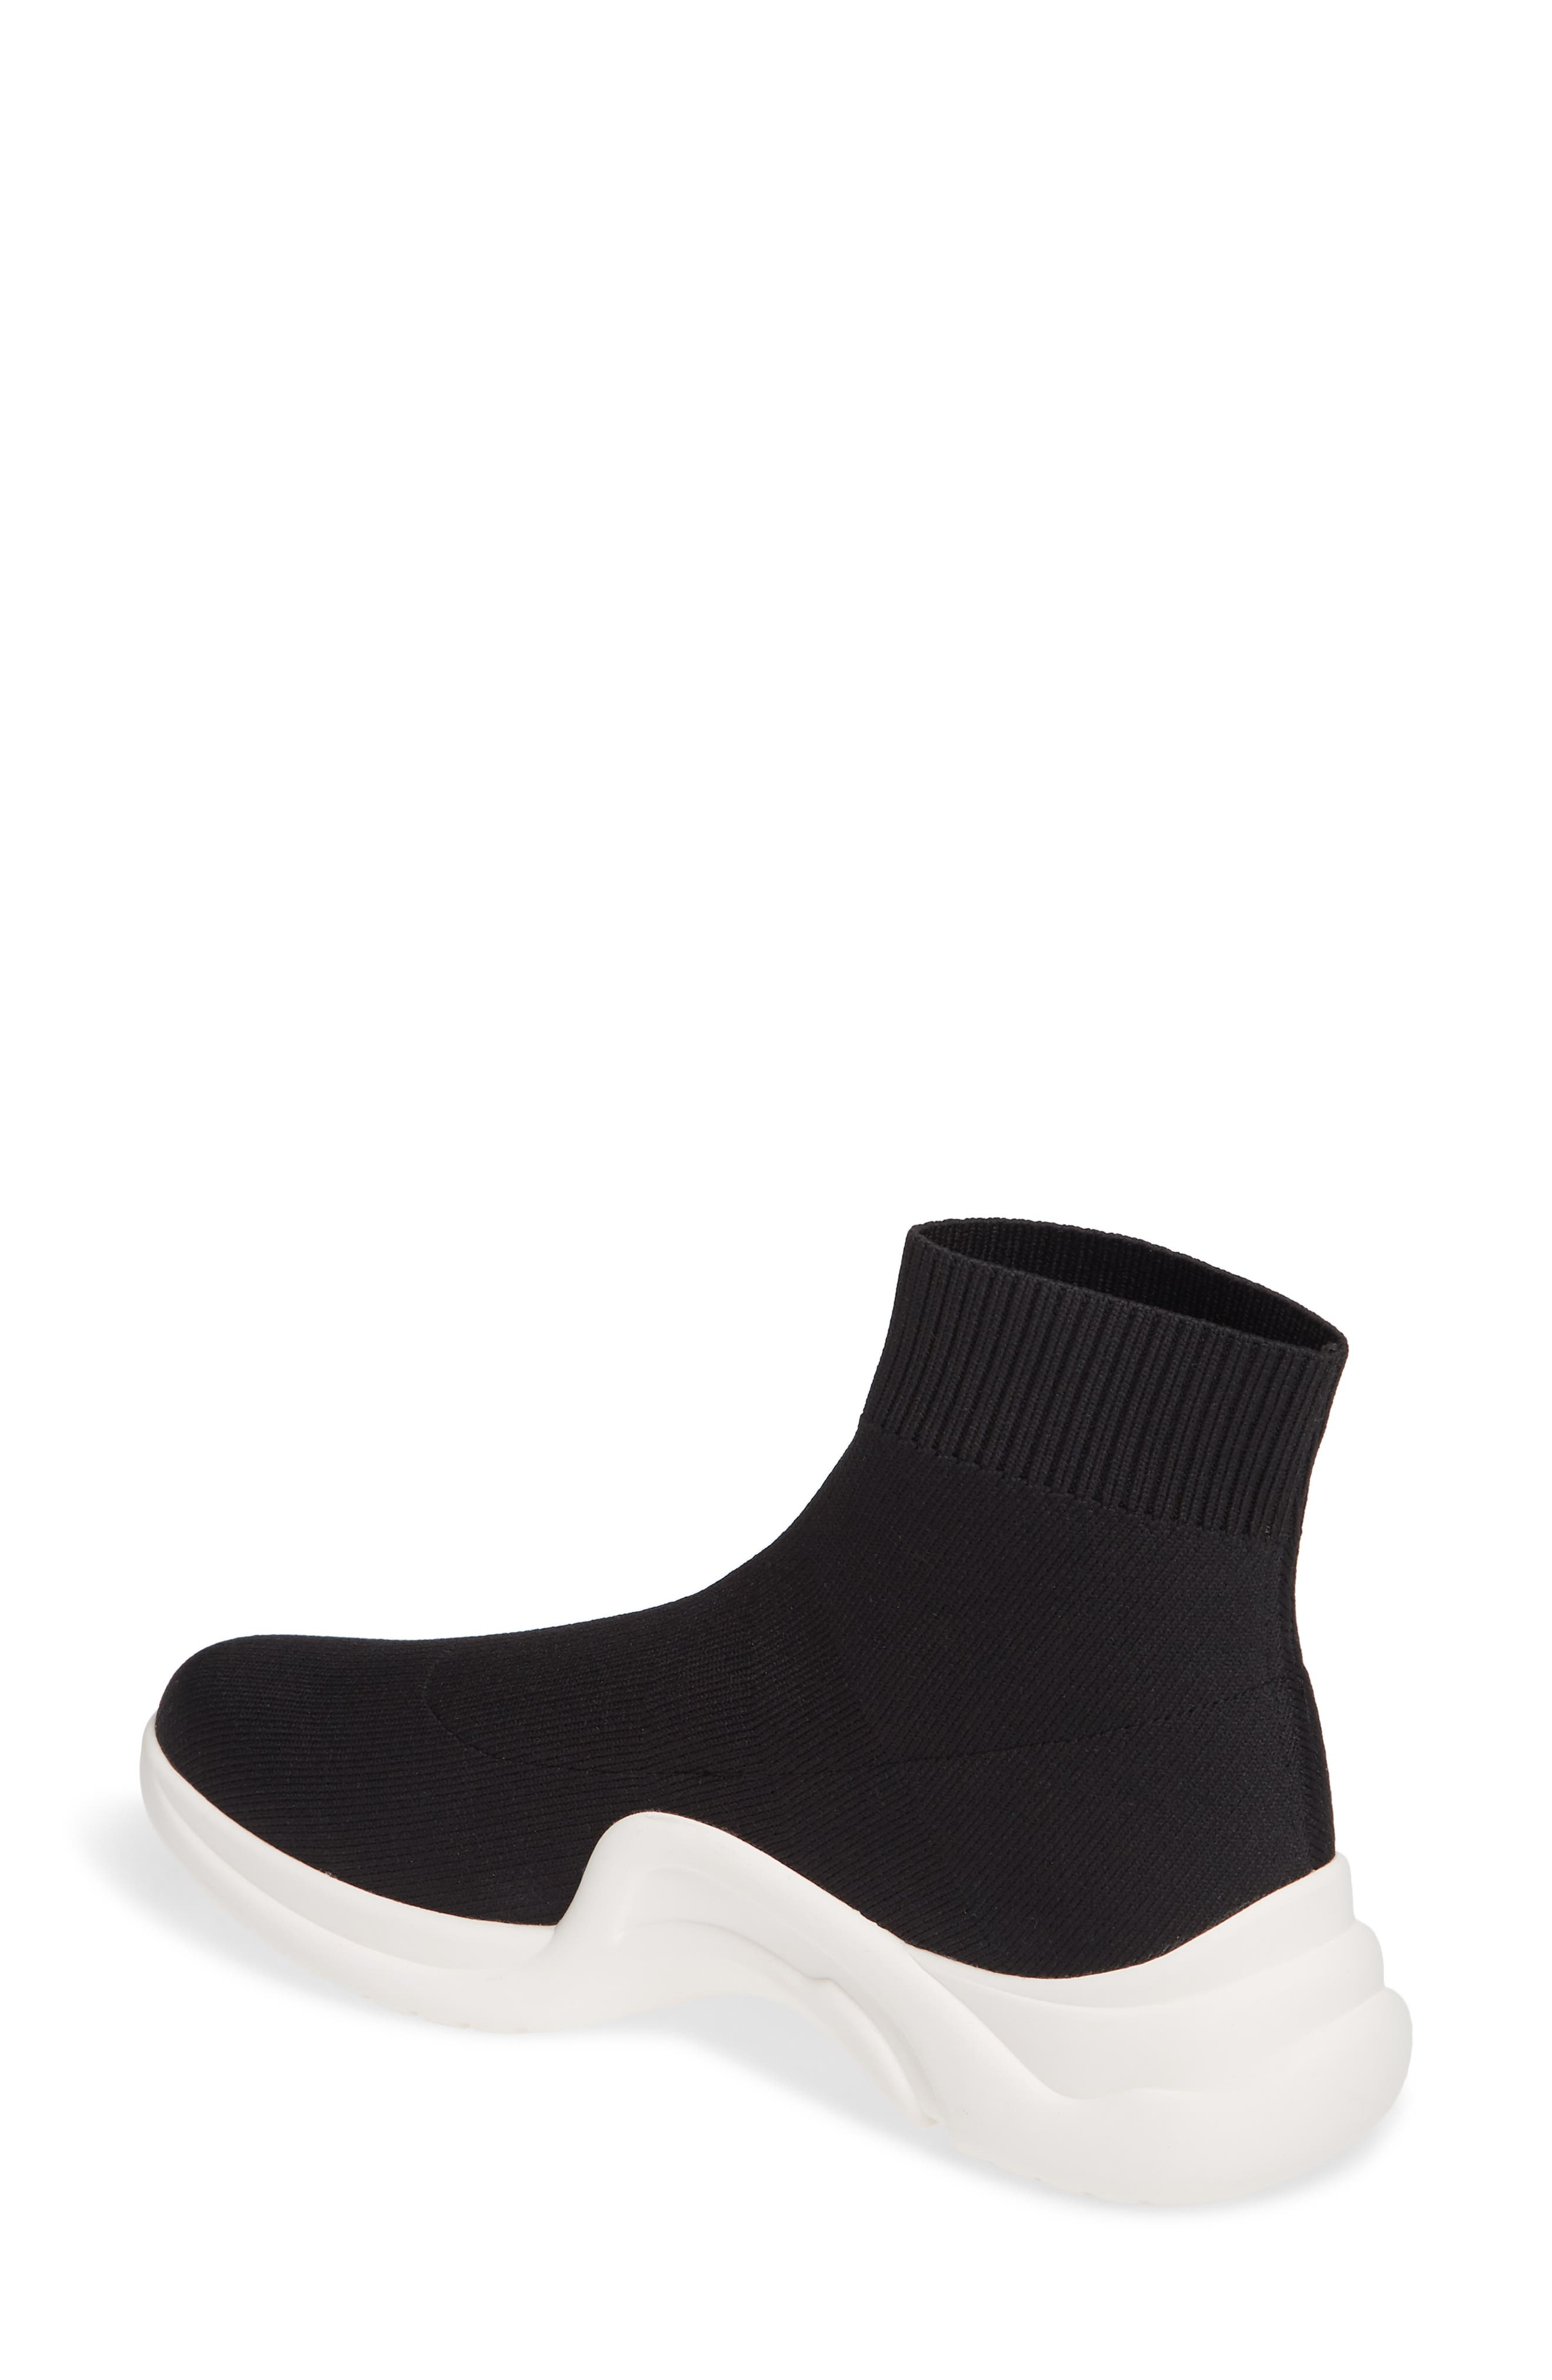 LINEA PAOLO, Gale Sneaker, Alternate thumbnail 2, color, BLACK KNIT FABRIC